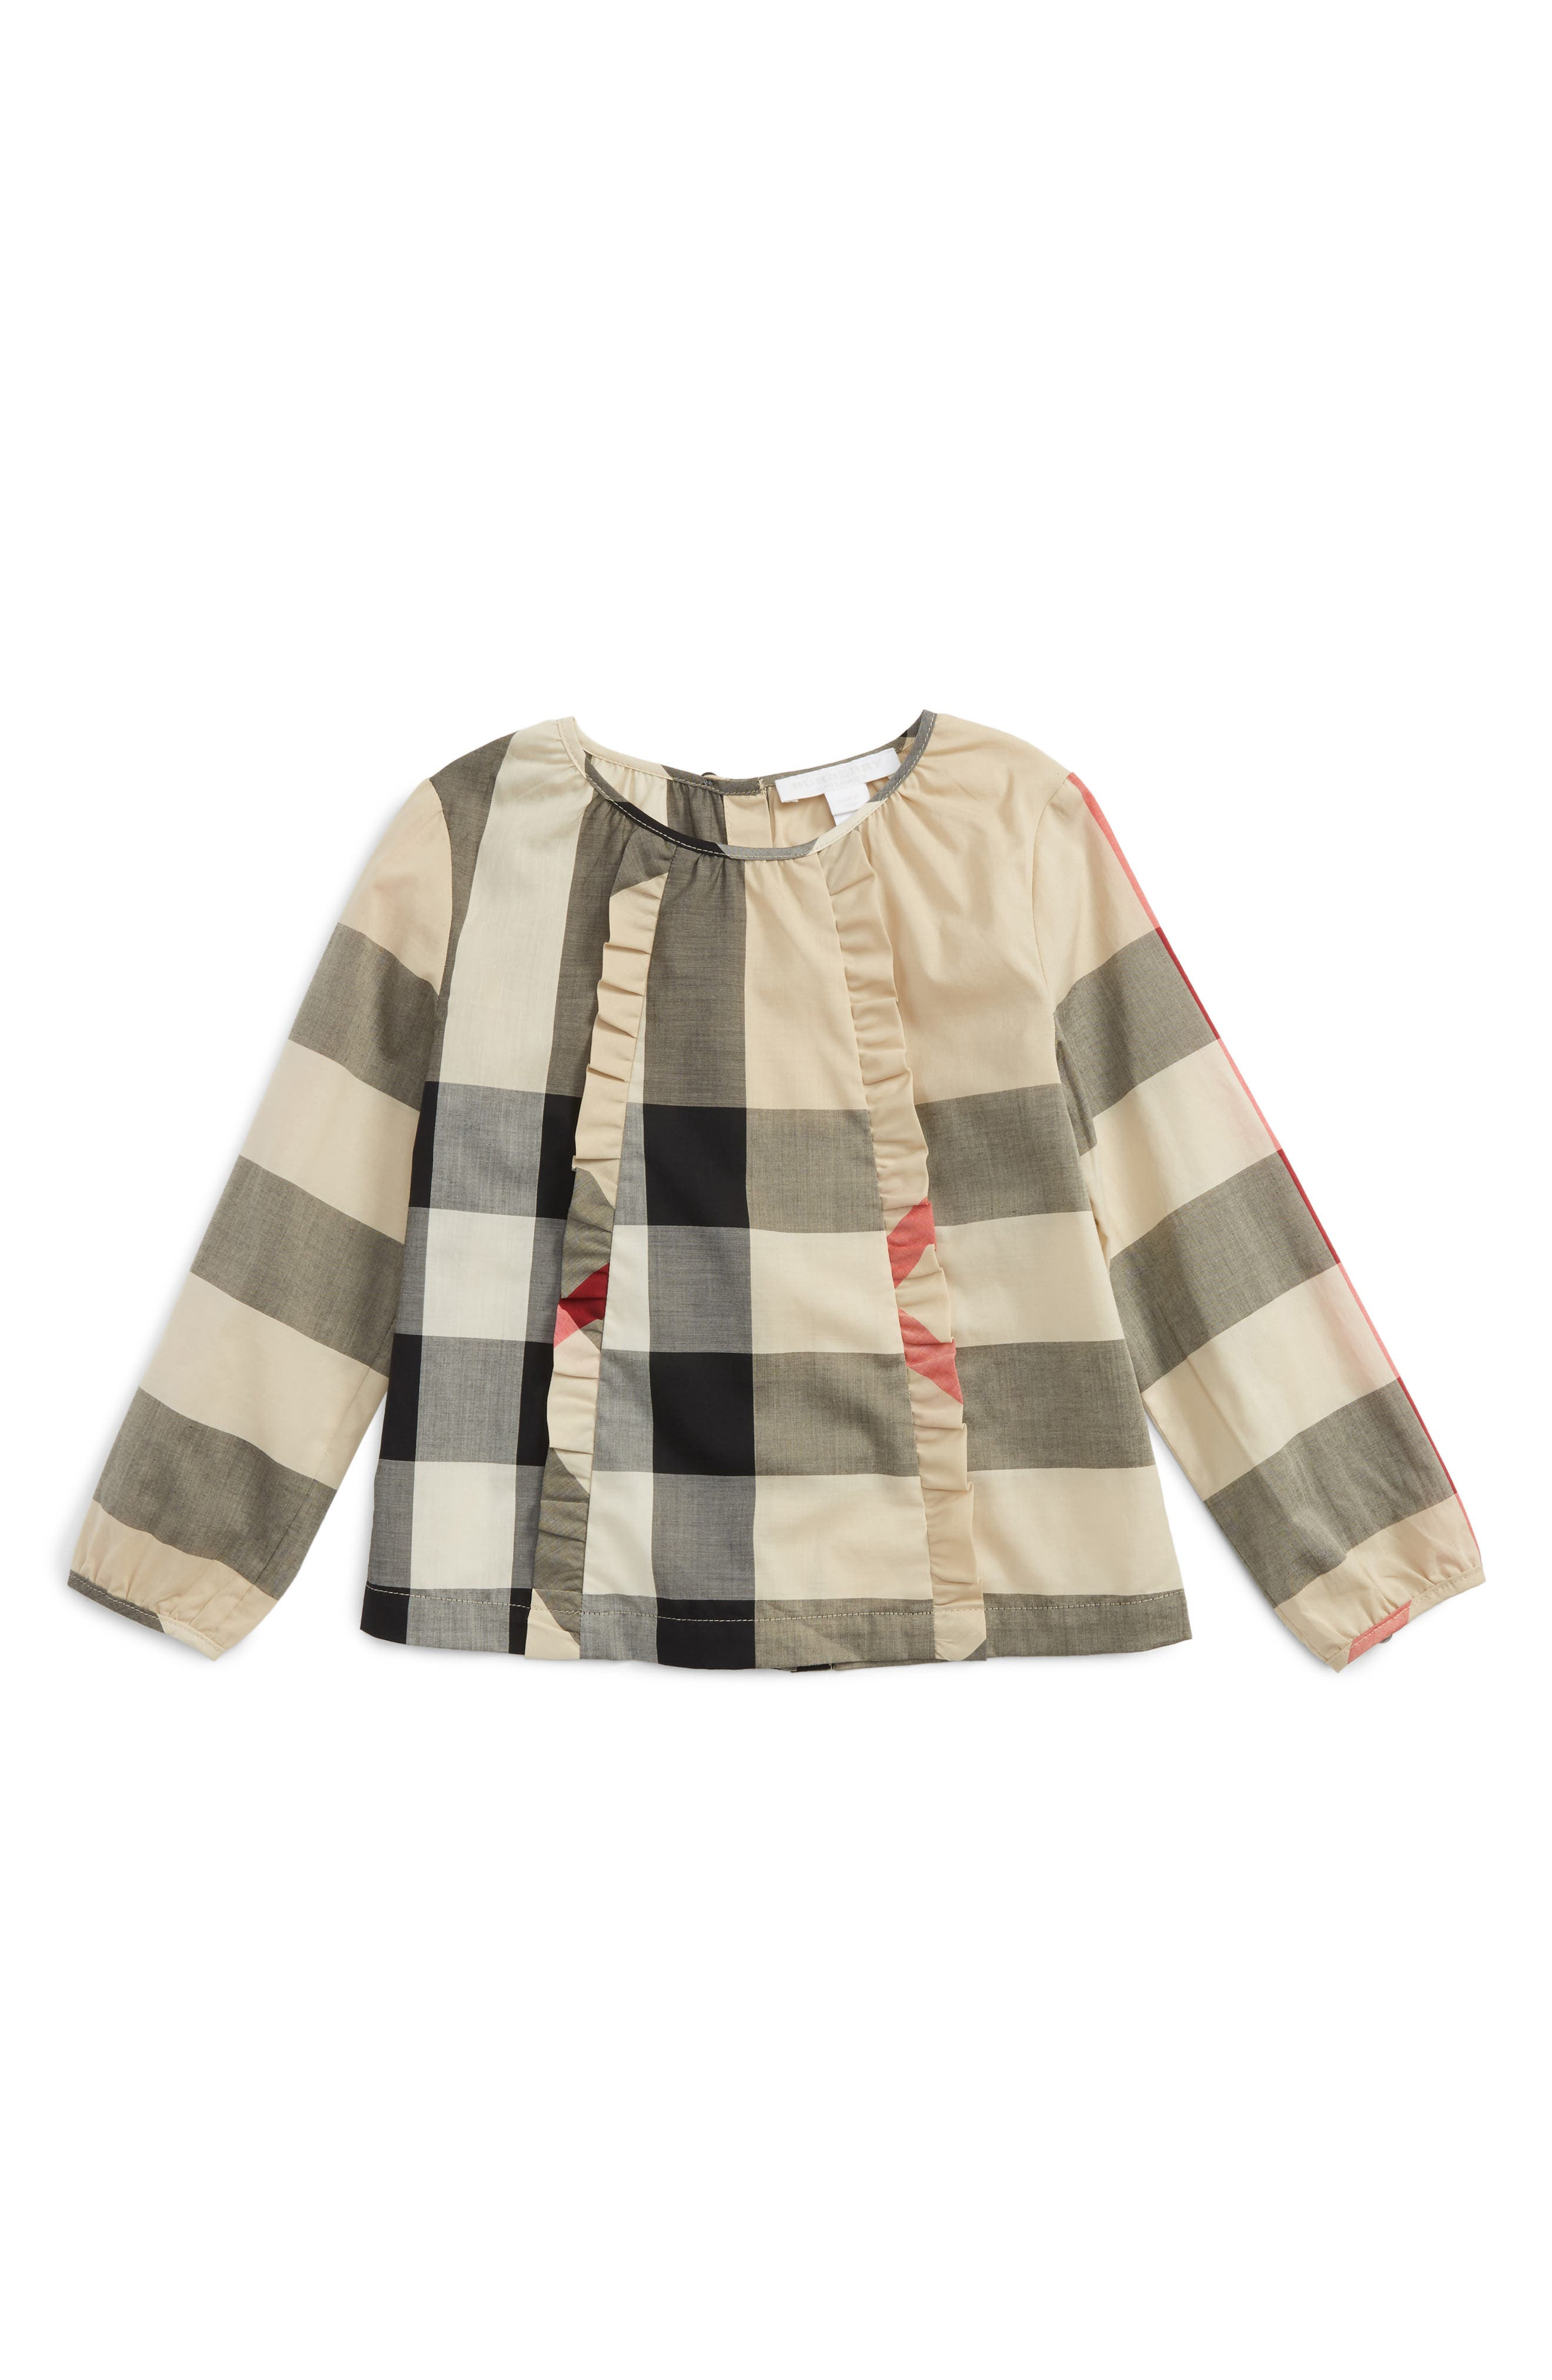 Alternate Image 1 Selected - Burberry Agatha Check Print Top (Toddler Girls)